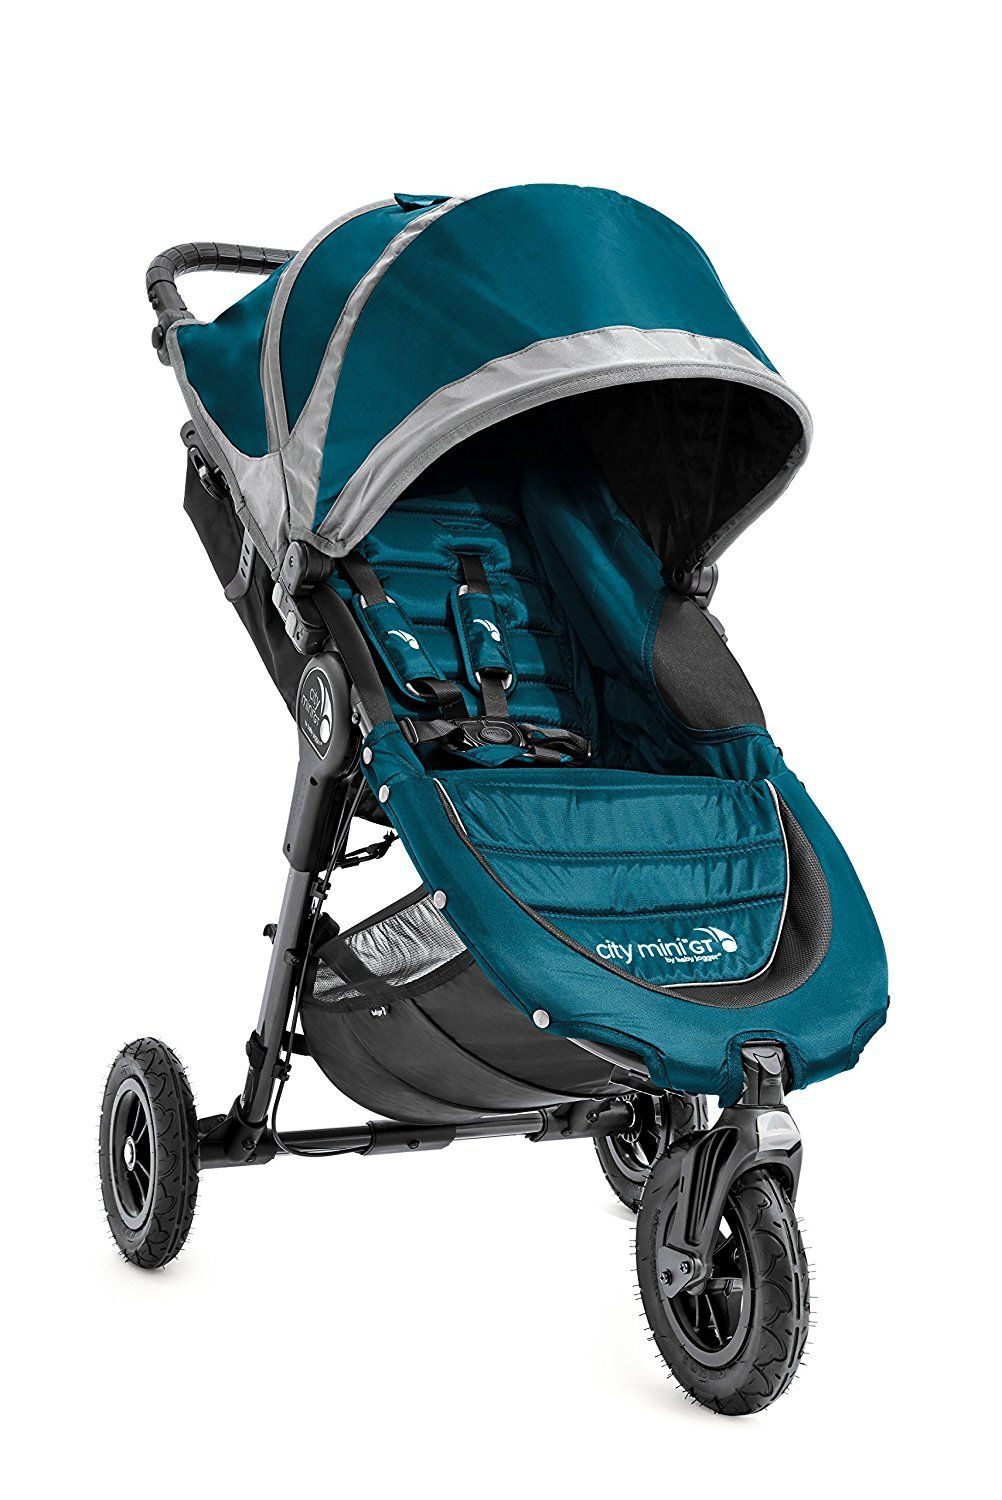 The Baby Jogger 2016 City Mini GT Single stroller is a top